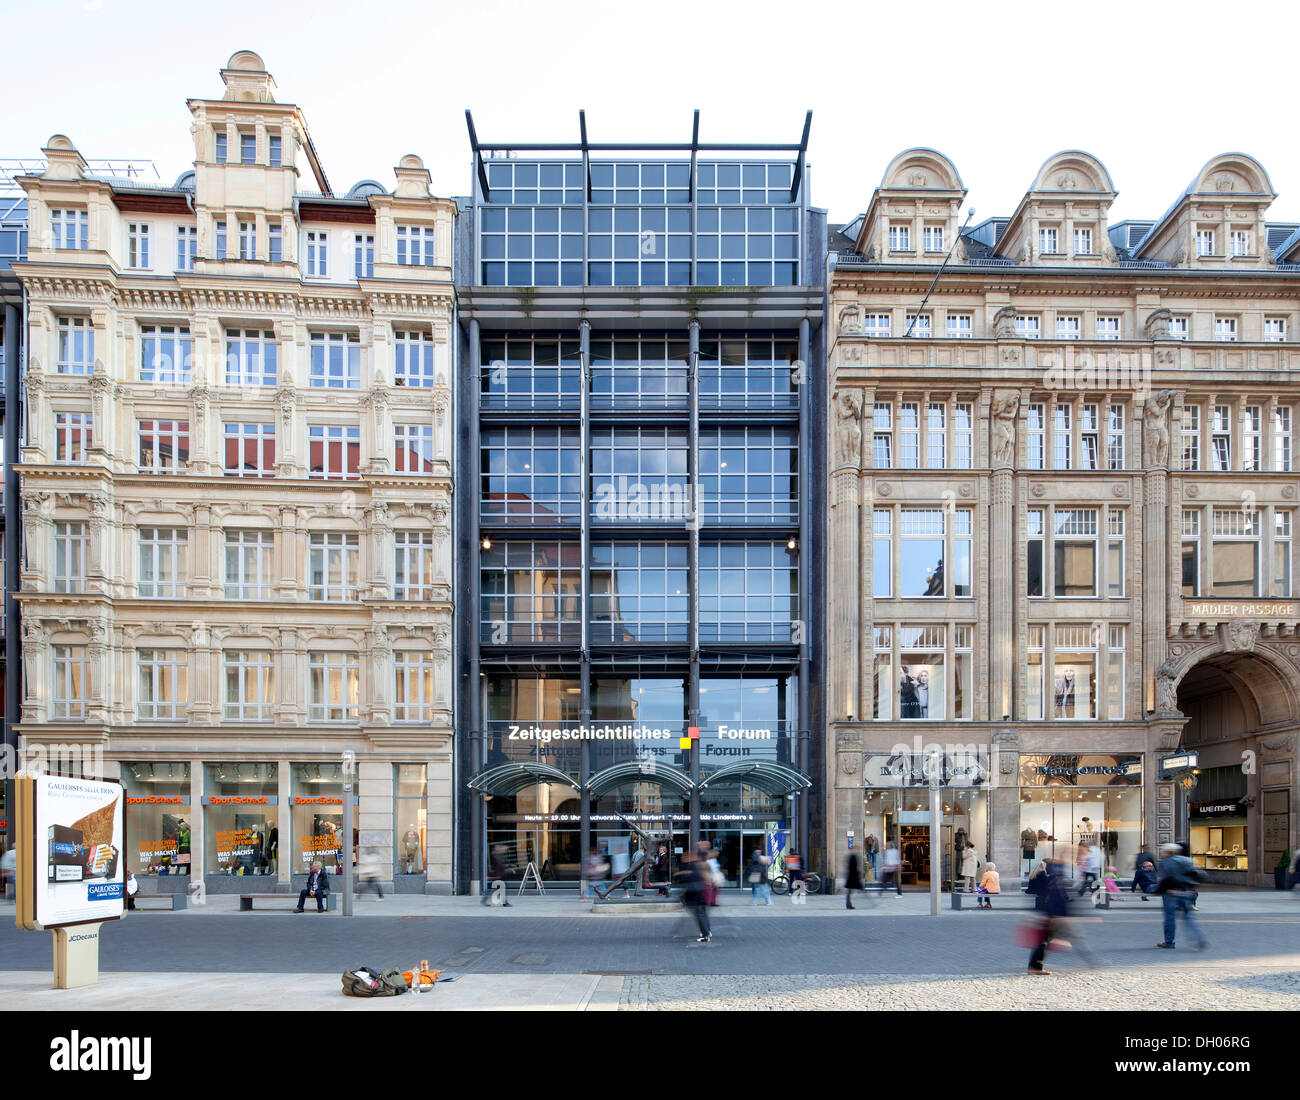 Forum of Contemporary History, Museum of the History of the Federal Republic of Germany, Maedlerpassage shopping arcade, Leipzig - Stock Image